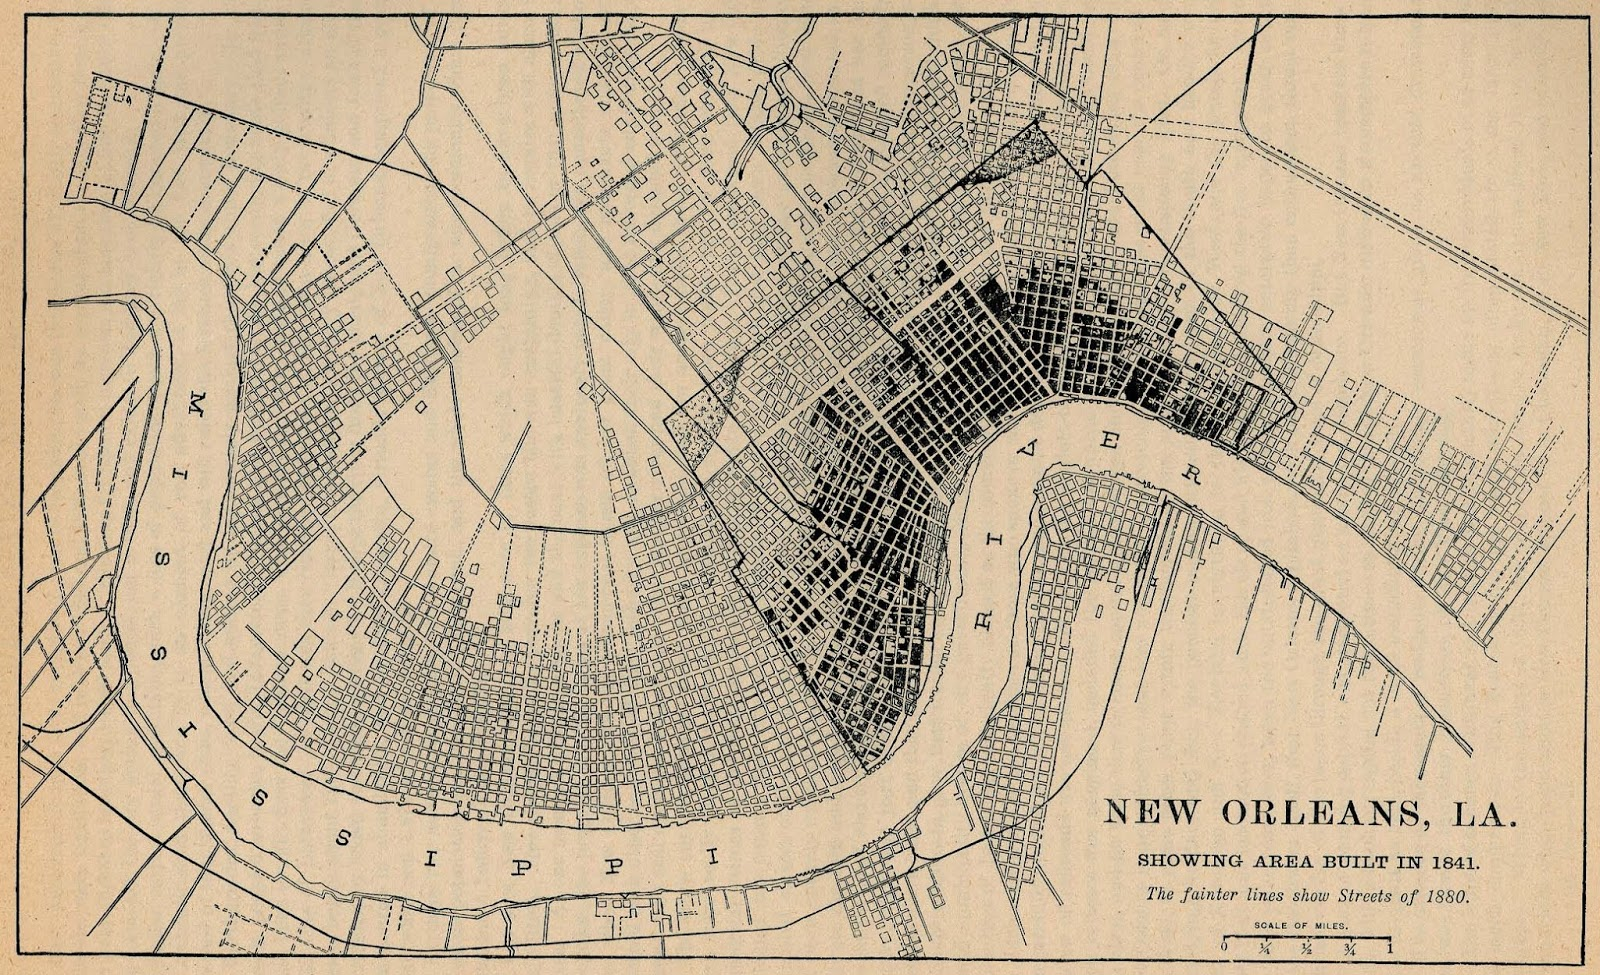 the shape of the original french quarter is clearly visible then on either side similar street layouts are visible as new orleans expanded with the